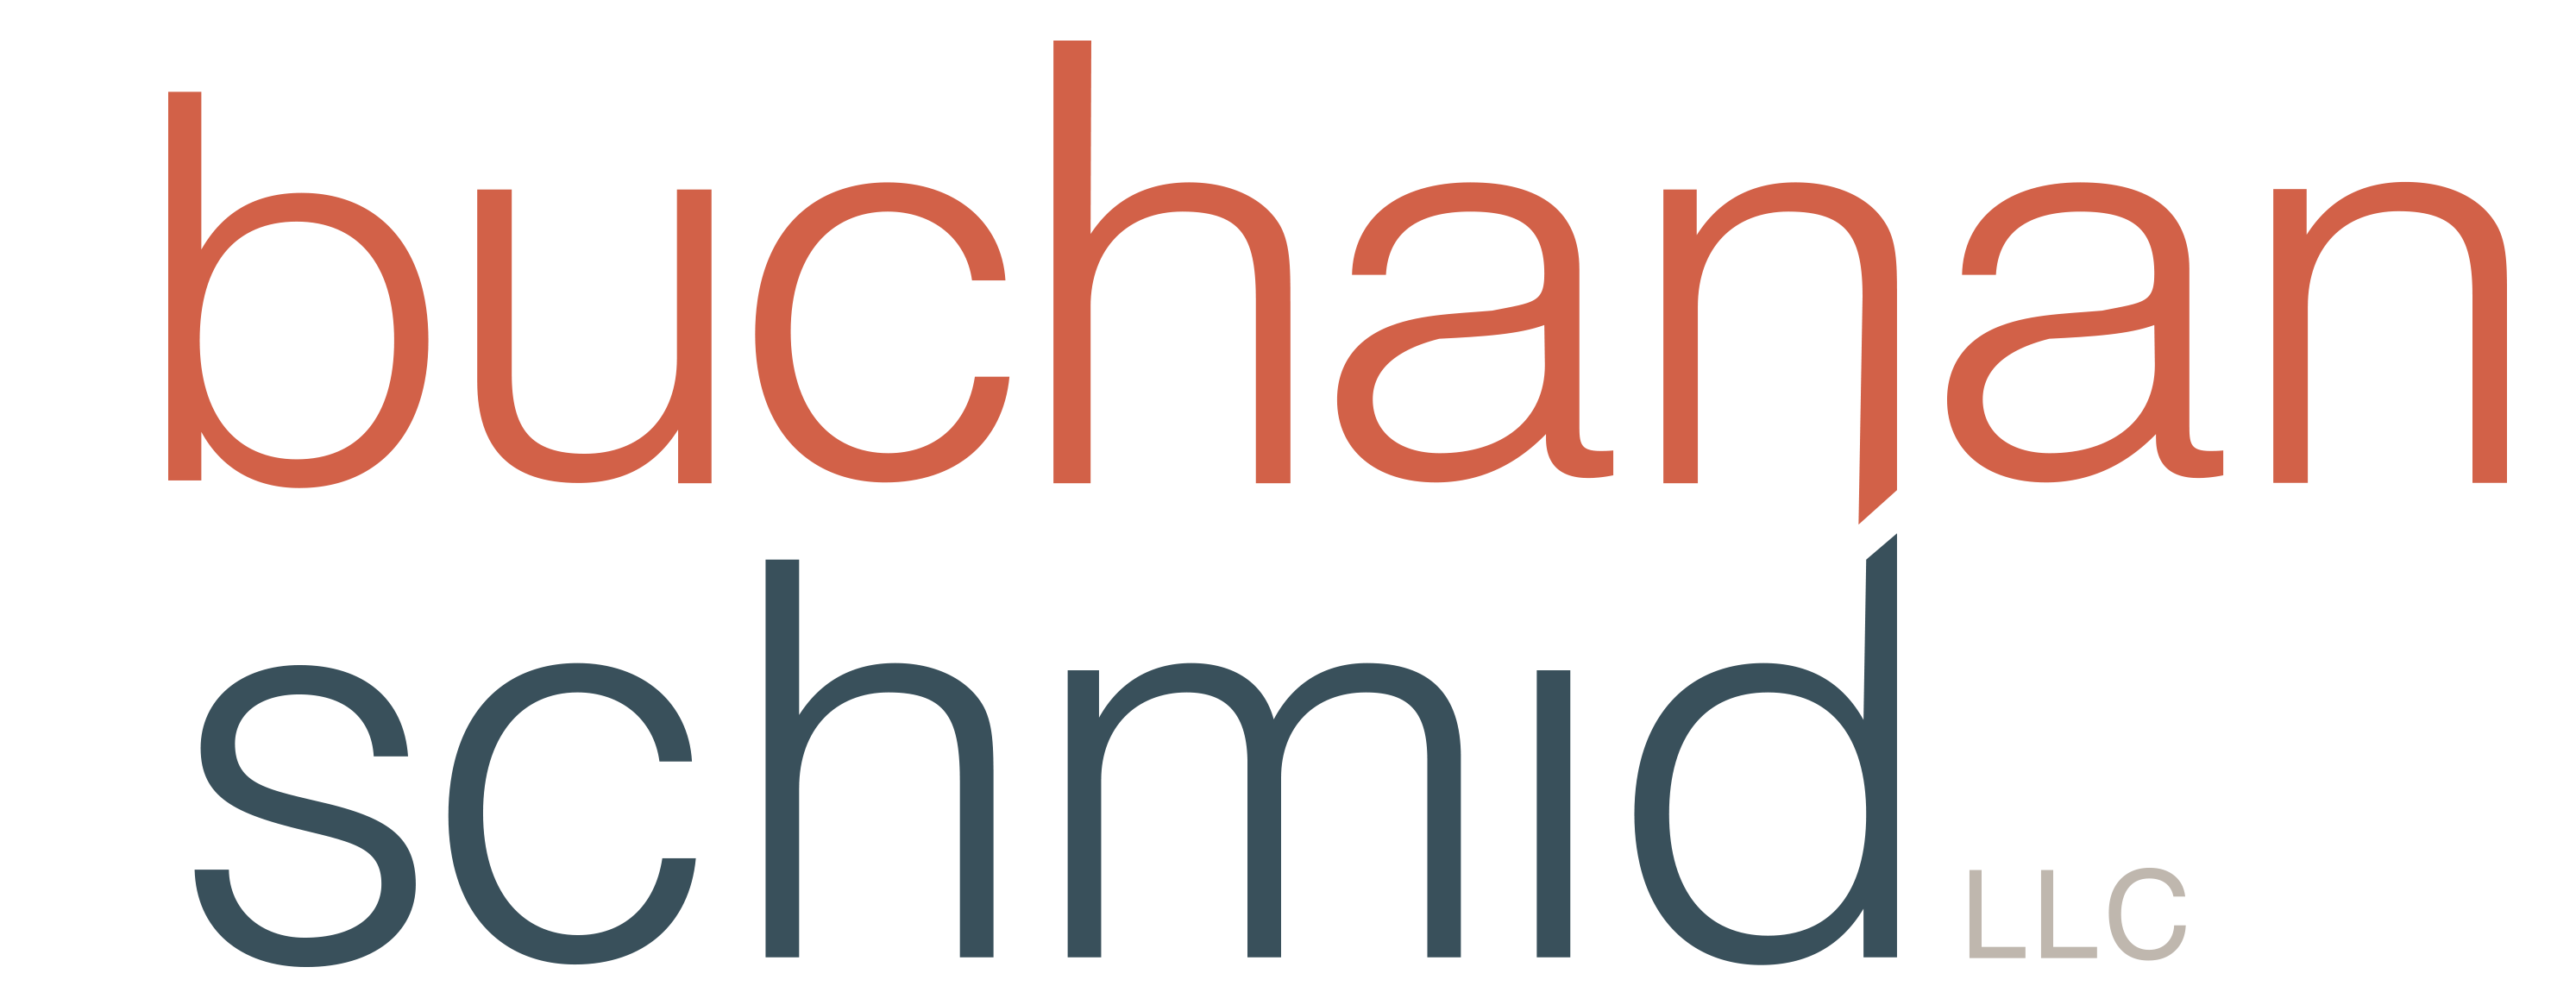 Buchanan Schmid LLC Bend, Oregon Litigation Attorneys